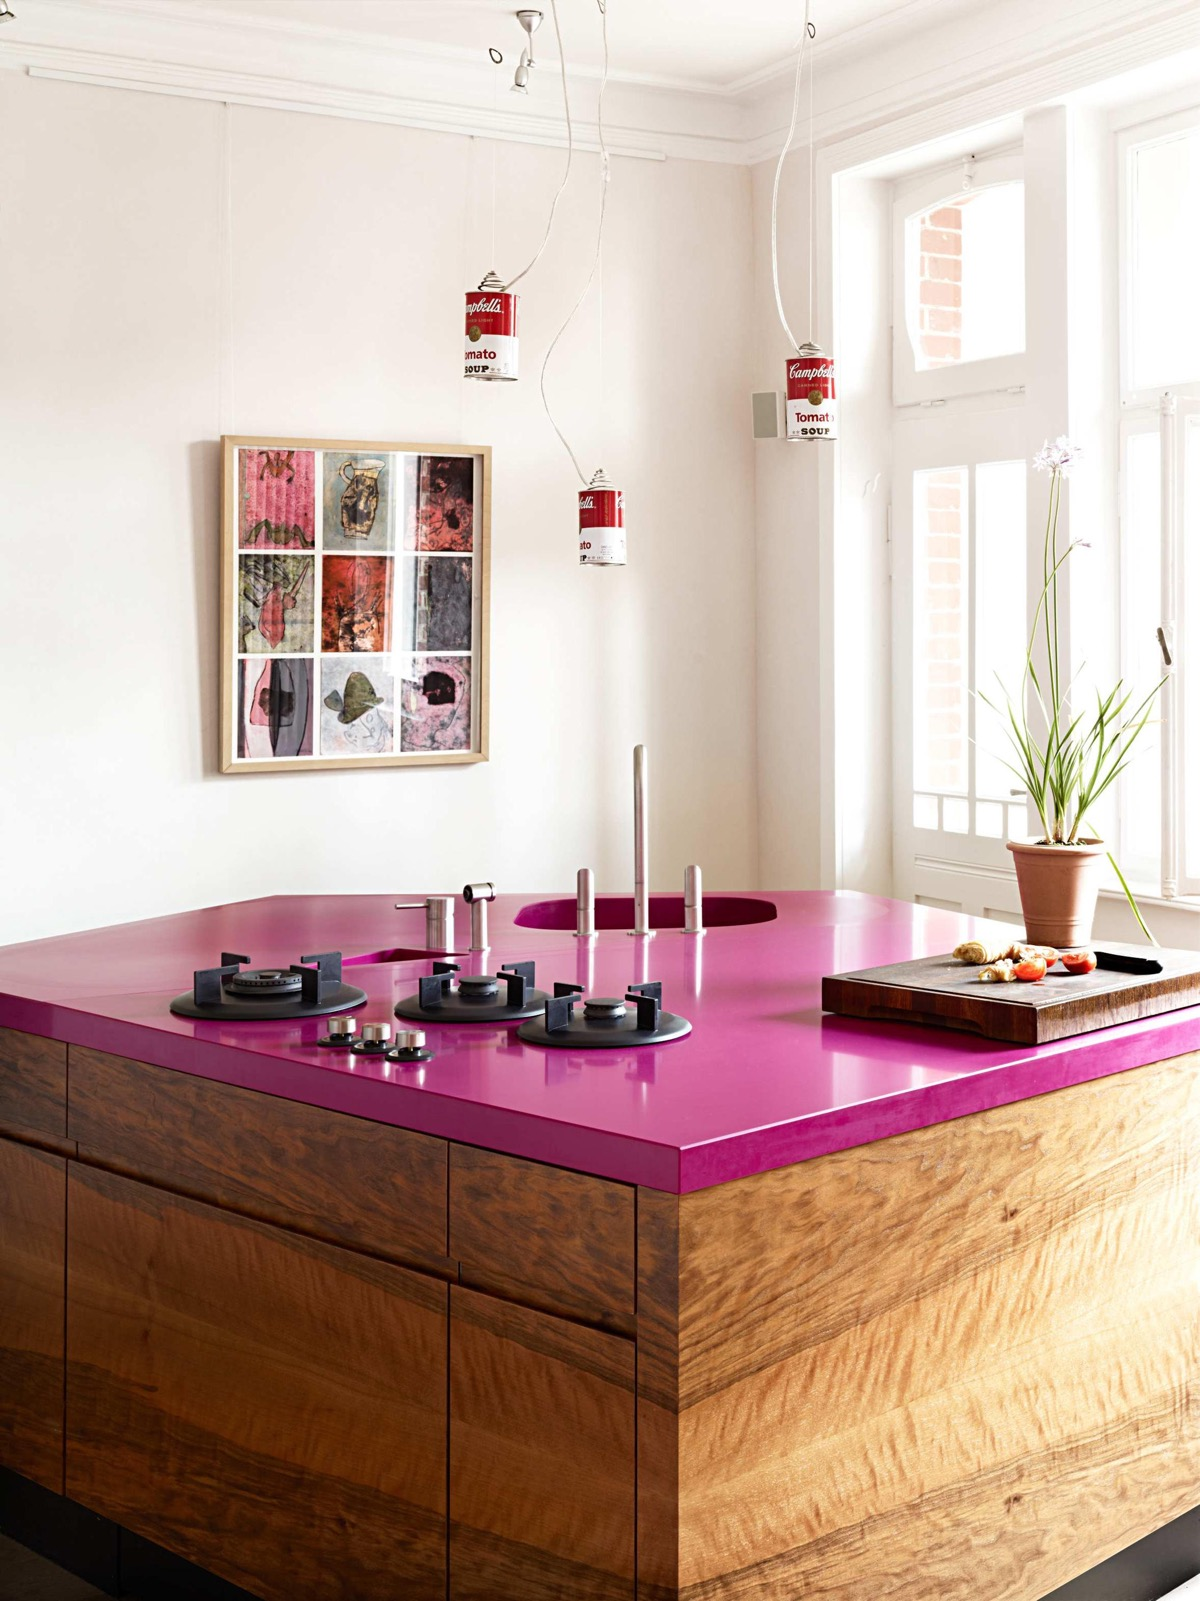 51 Inspirational Pink Kitchens With Tips & Accessories To Help You Design Yours images 35